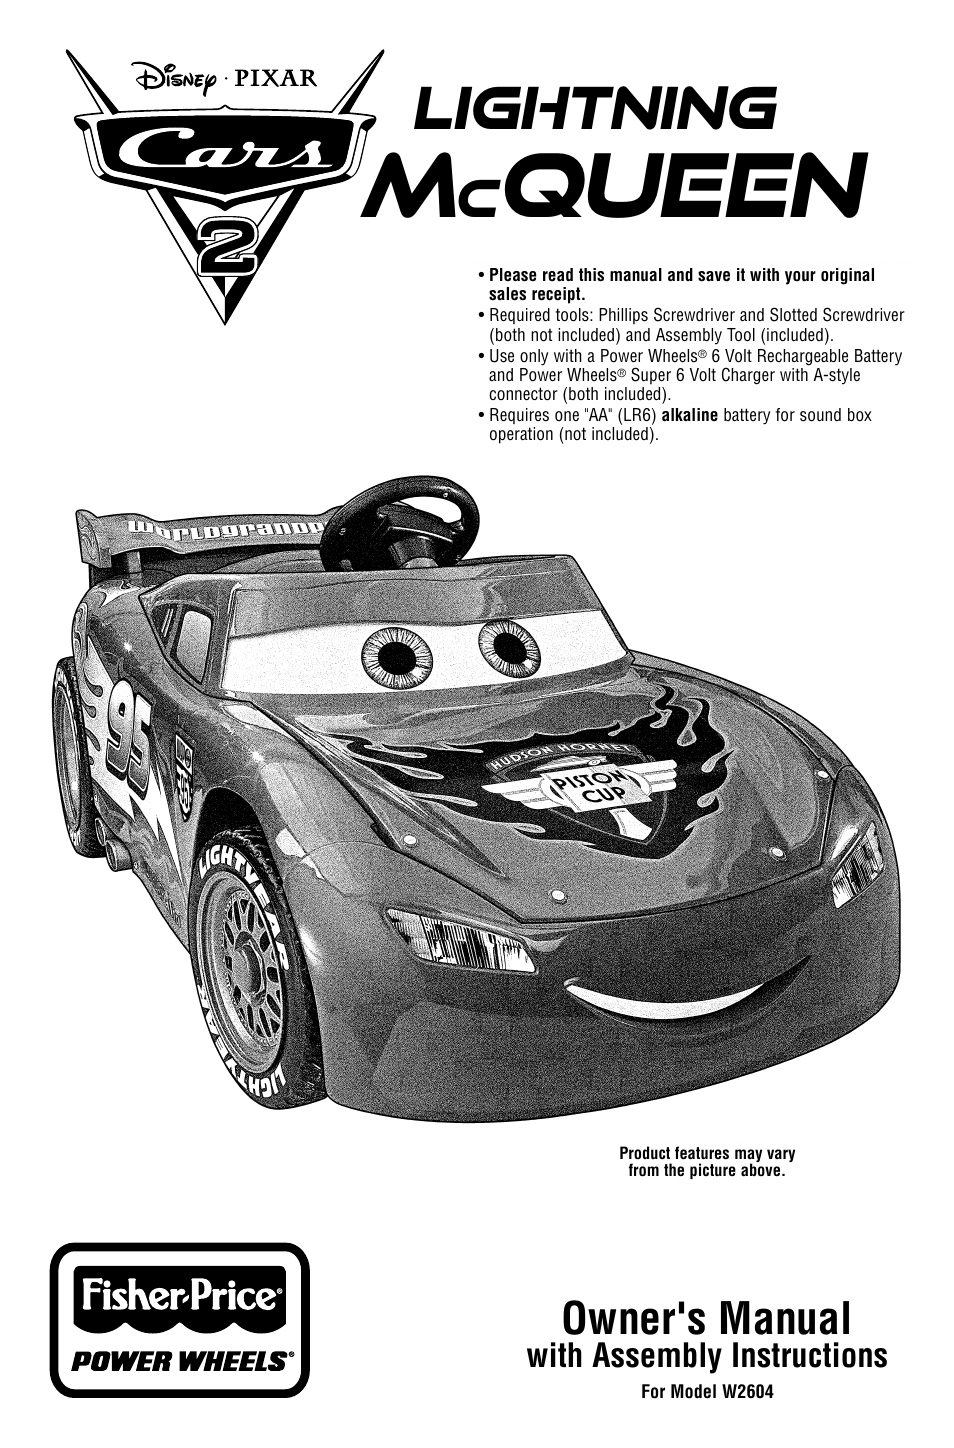 Fisher-price power wheels h4805 manuals.